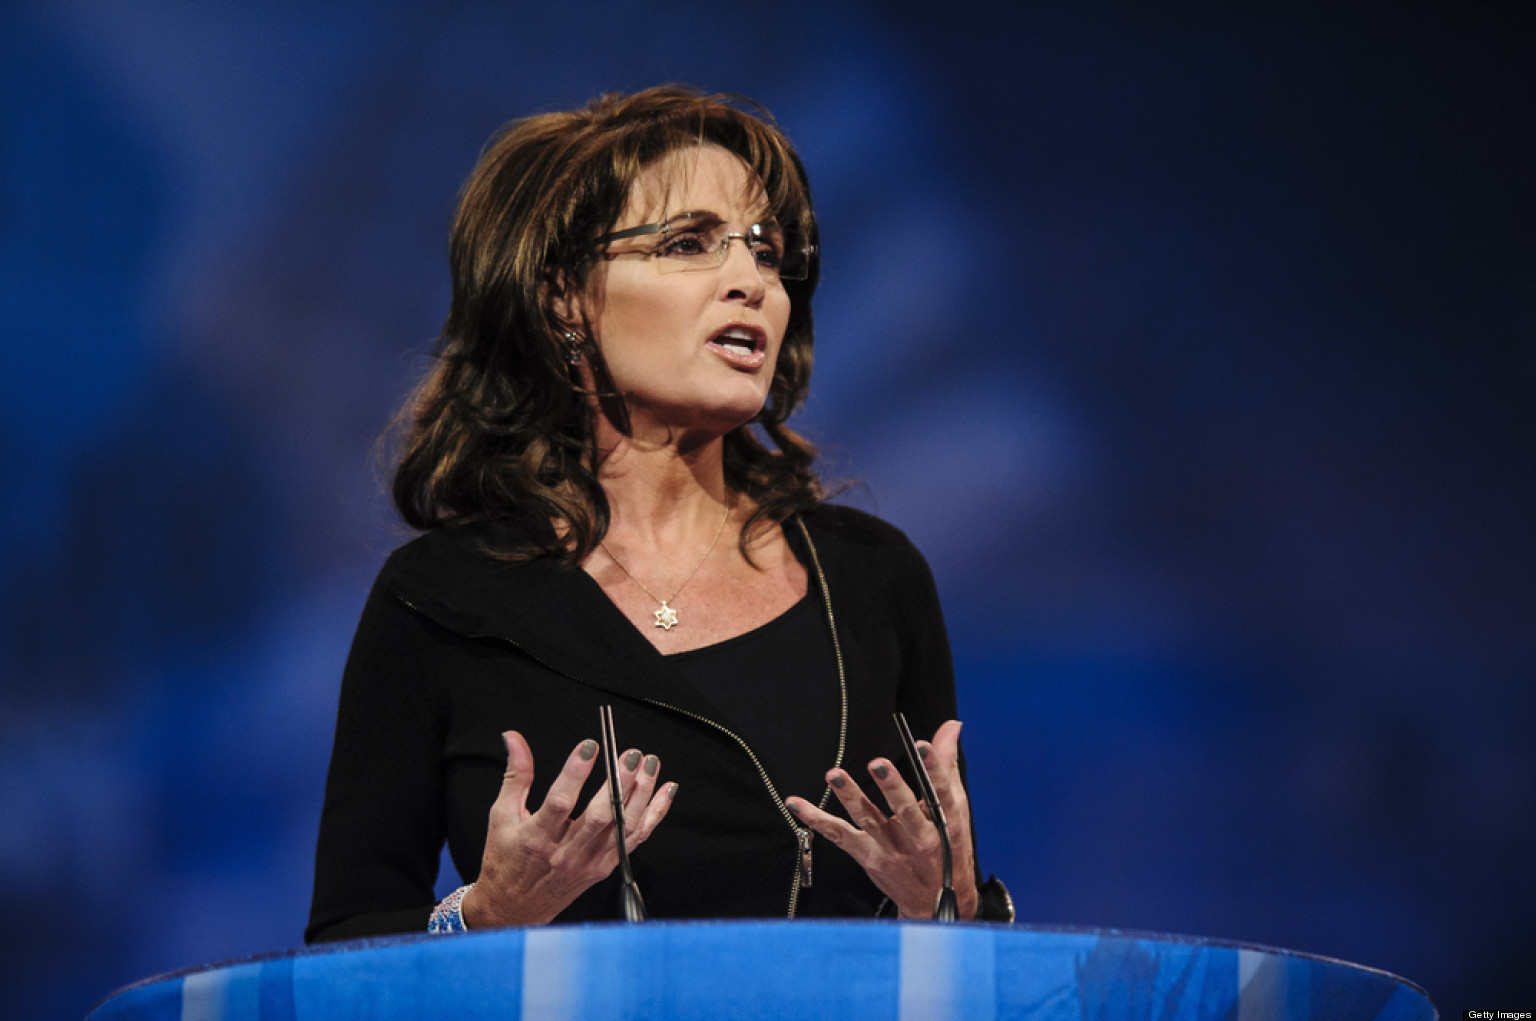 Sarah palin at nra meeting we must stand up and fight for our